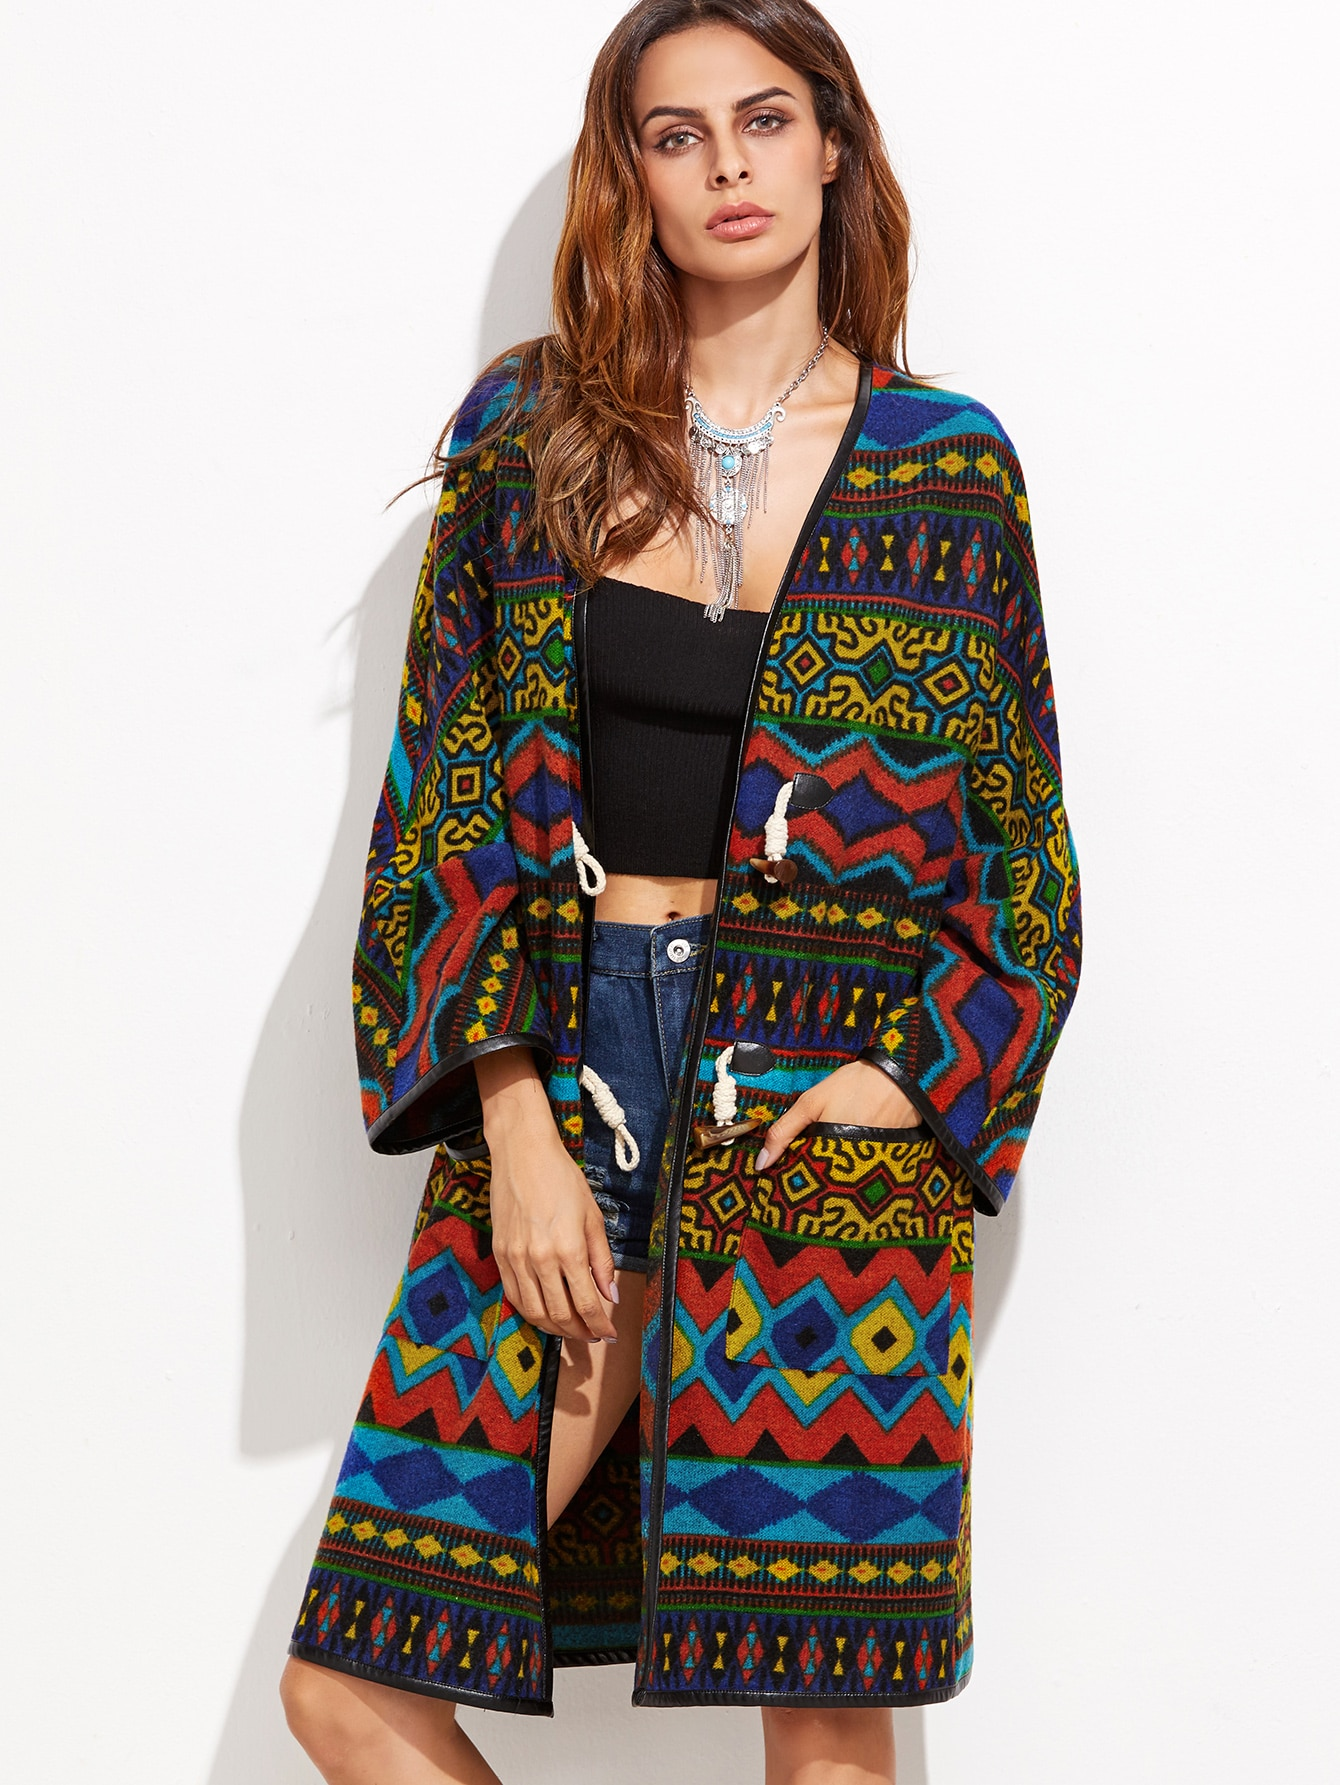 Multicolor Geo Pattern Faux Leather Binding CoatMulticolor Geo Pattern Faux Leather Binding Coat<br><br>color: Multi<br>size: one-size